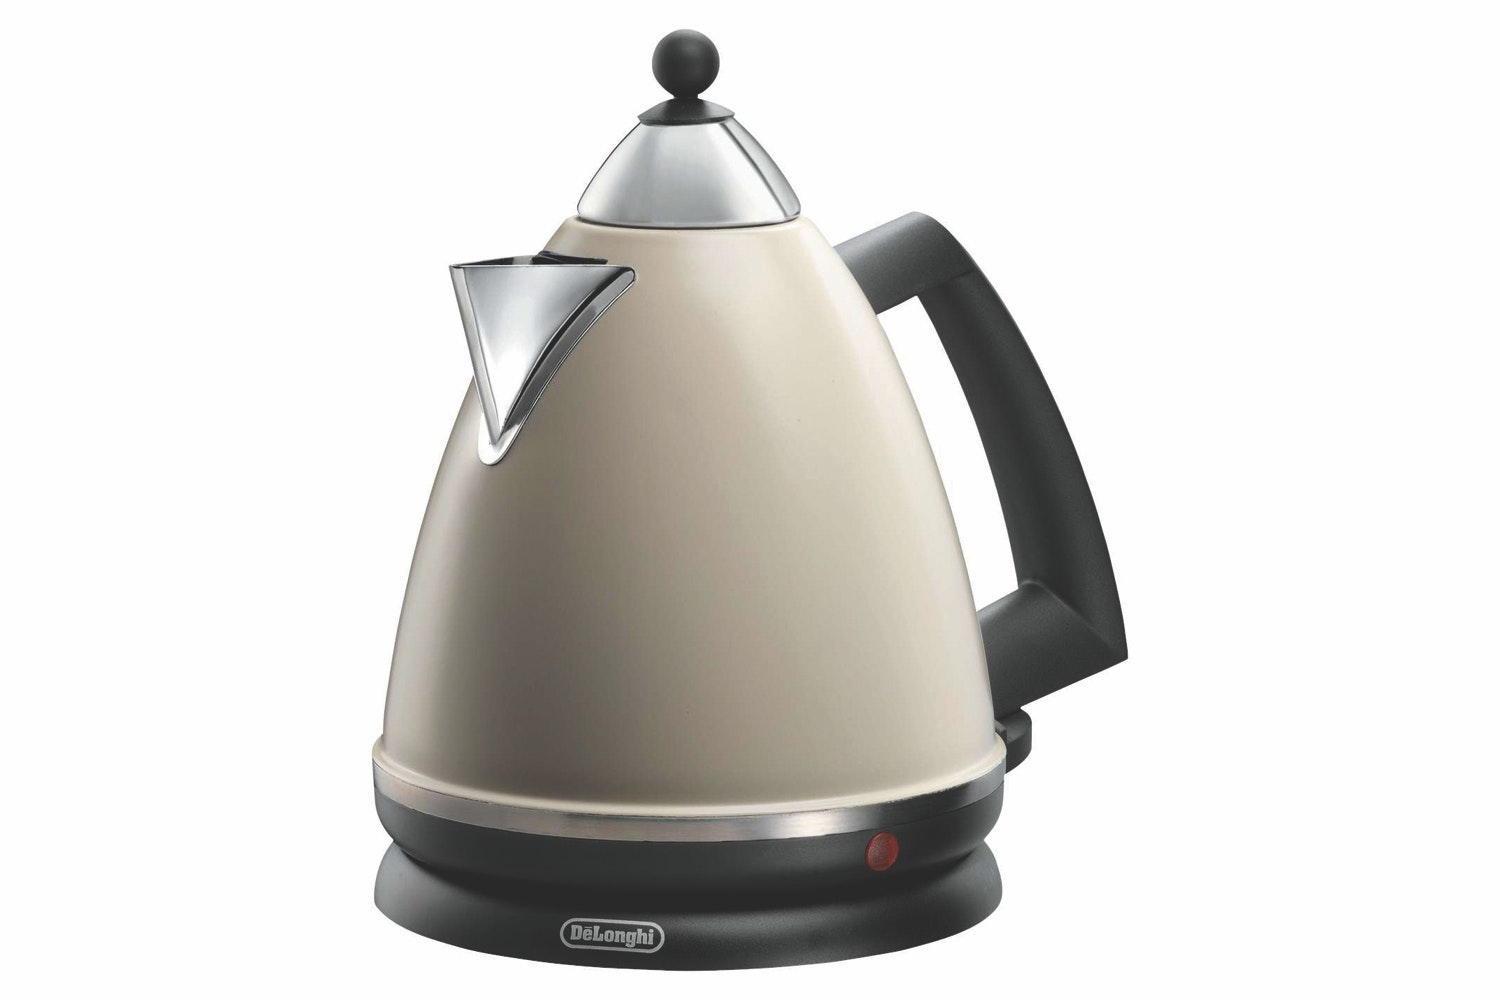 Delonghi Argento 1.7L Kettle | Cream